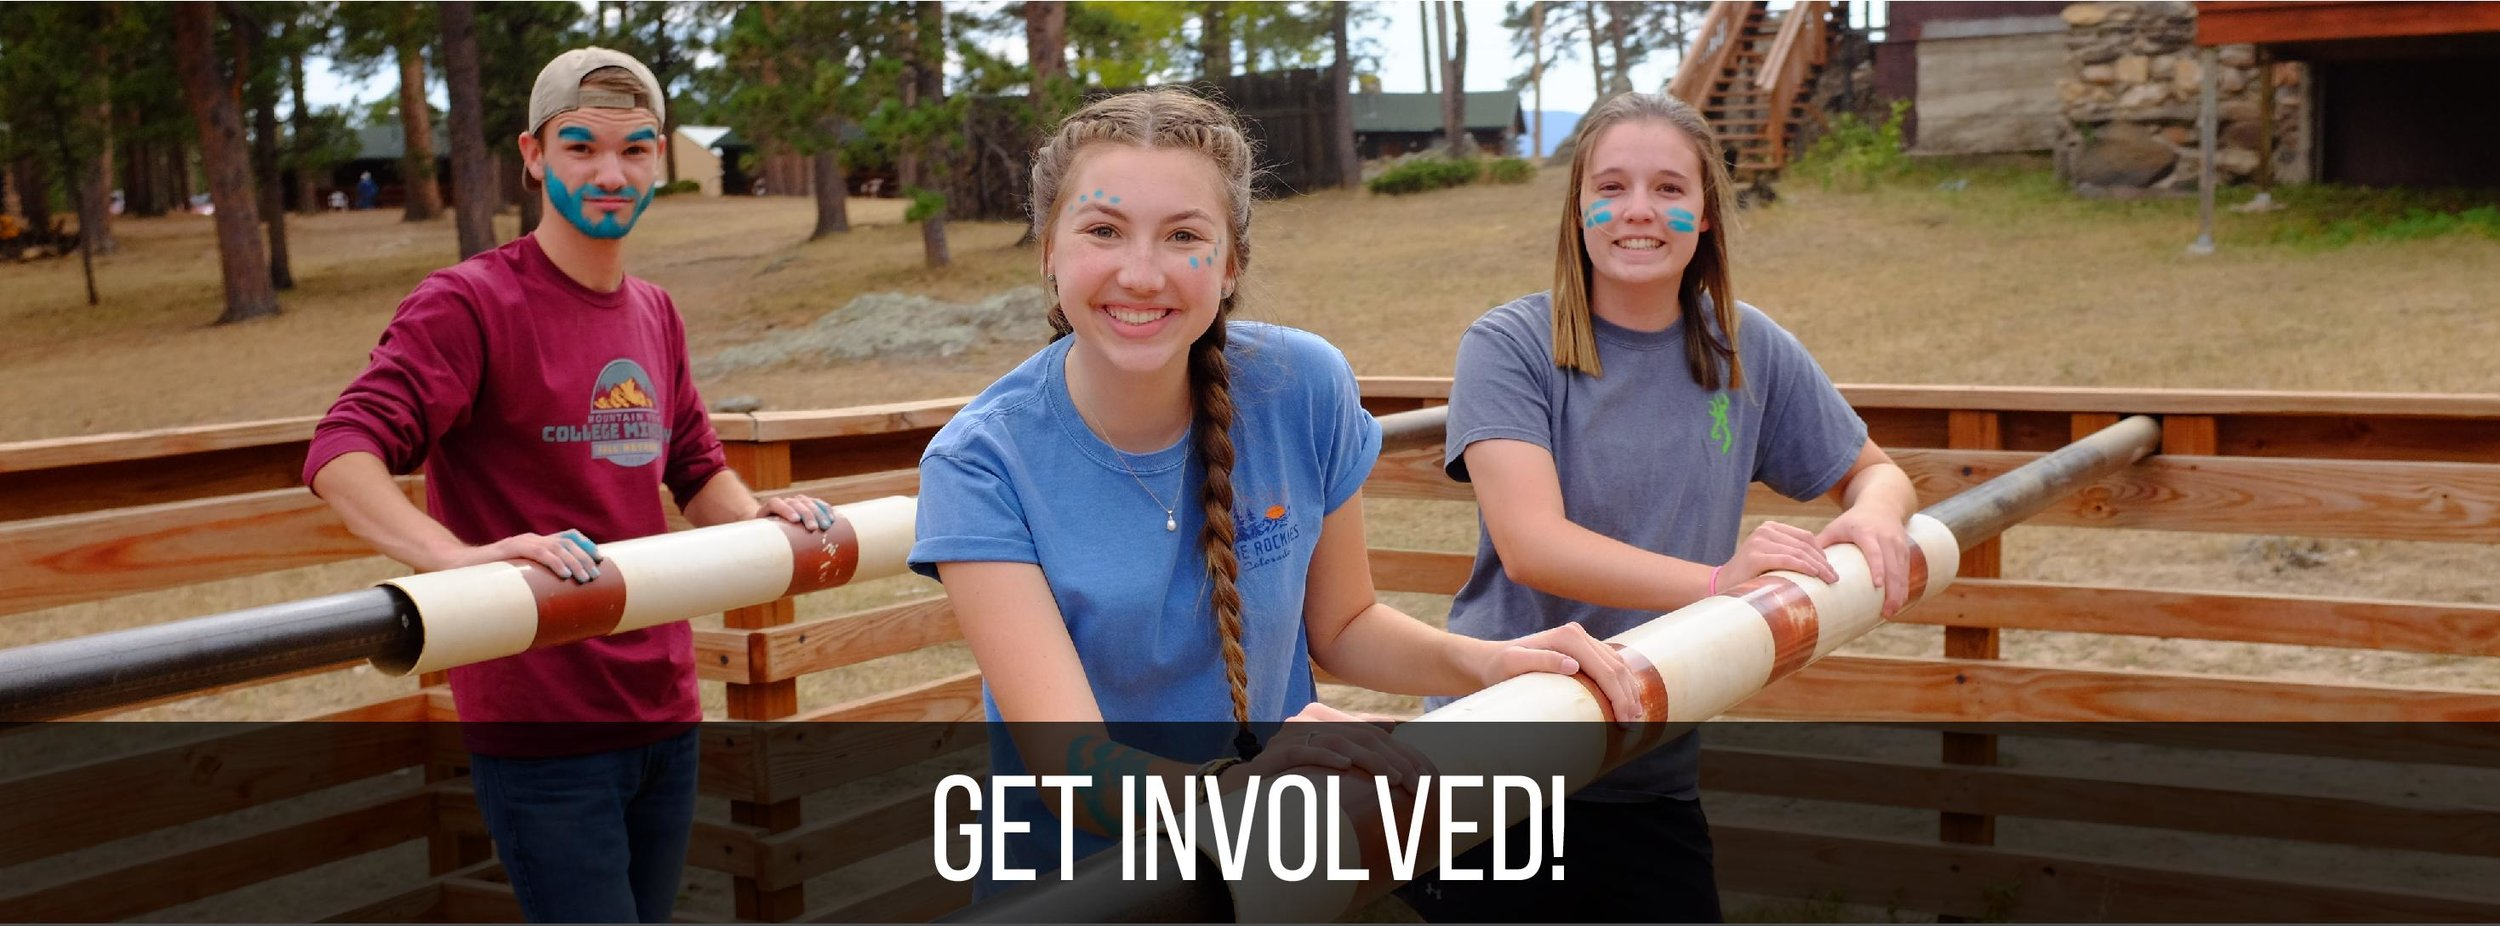 Get Involved in Christian Community